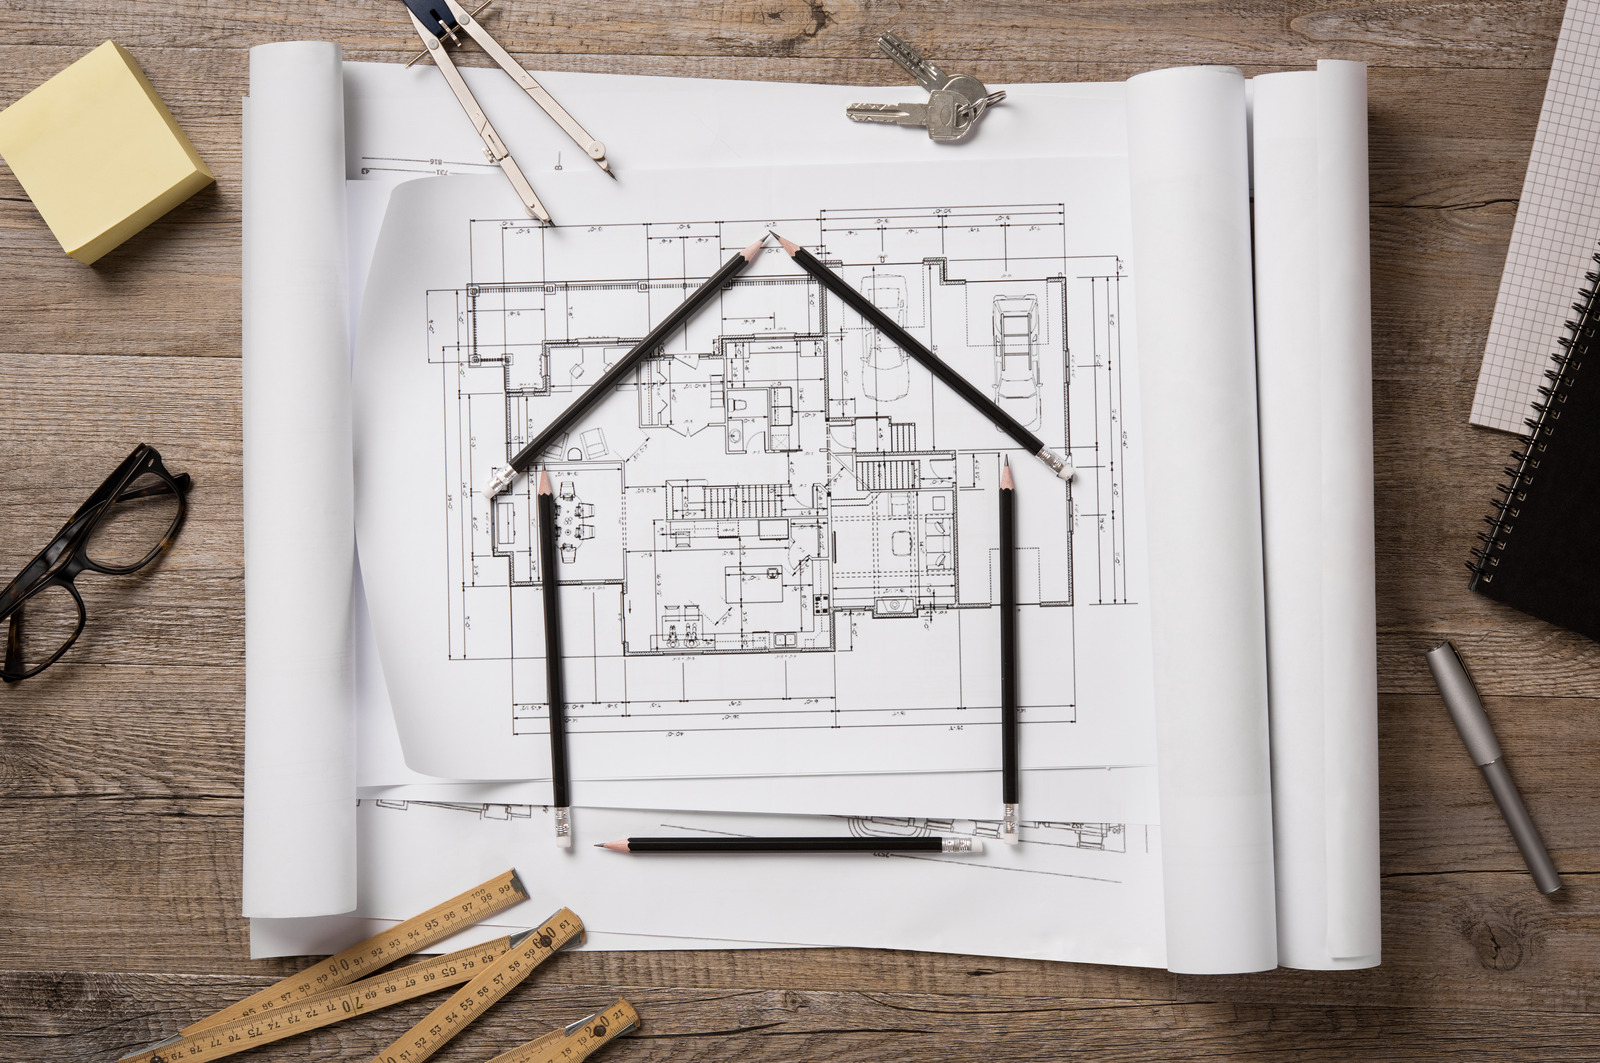 ARCHITECT FIRM, TRIMBLE ARCHITECTS, EXPLAINS HOW TO USE AN ARCHITECT FOR YOUR BUILDING PROJECT